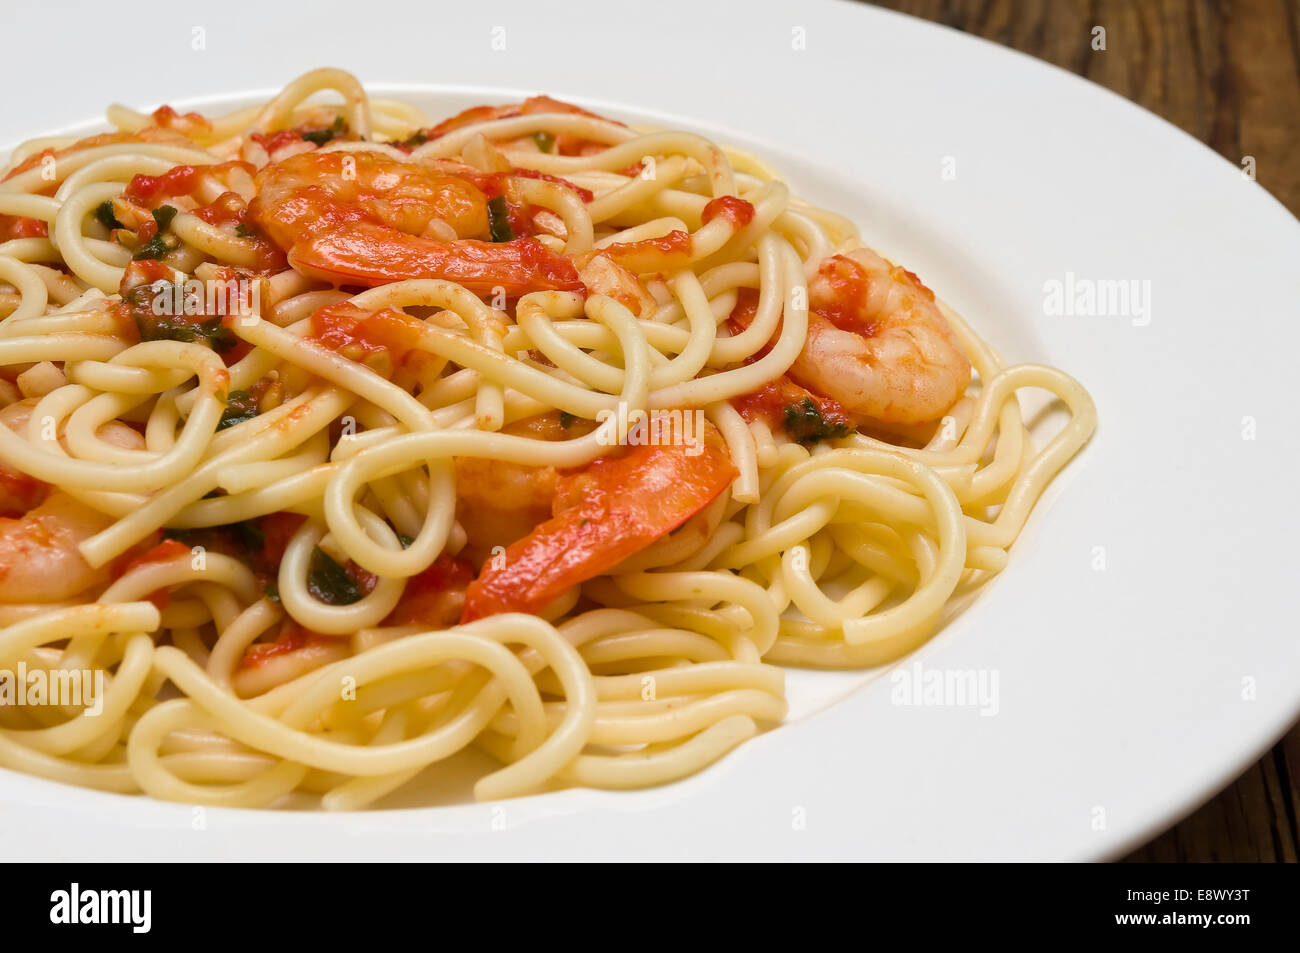 Pasta with spicy shrimp and tomato sauce on a wooden table - Stock Image